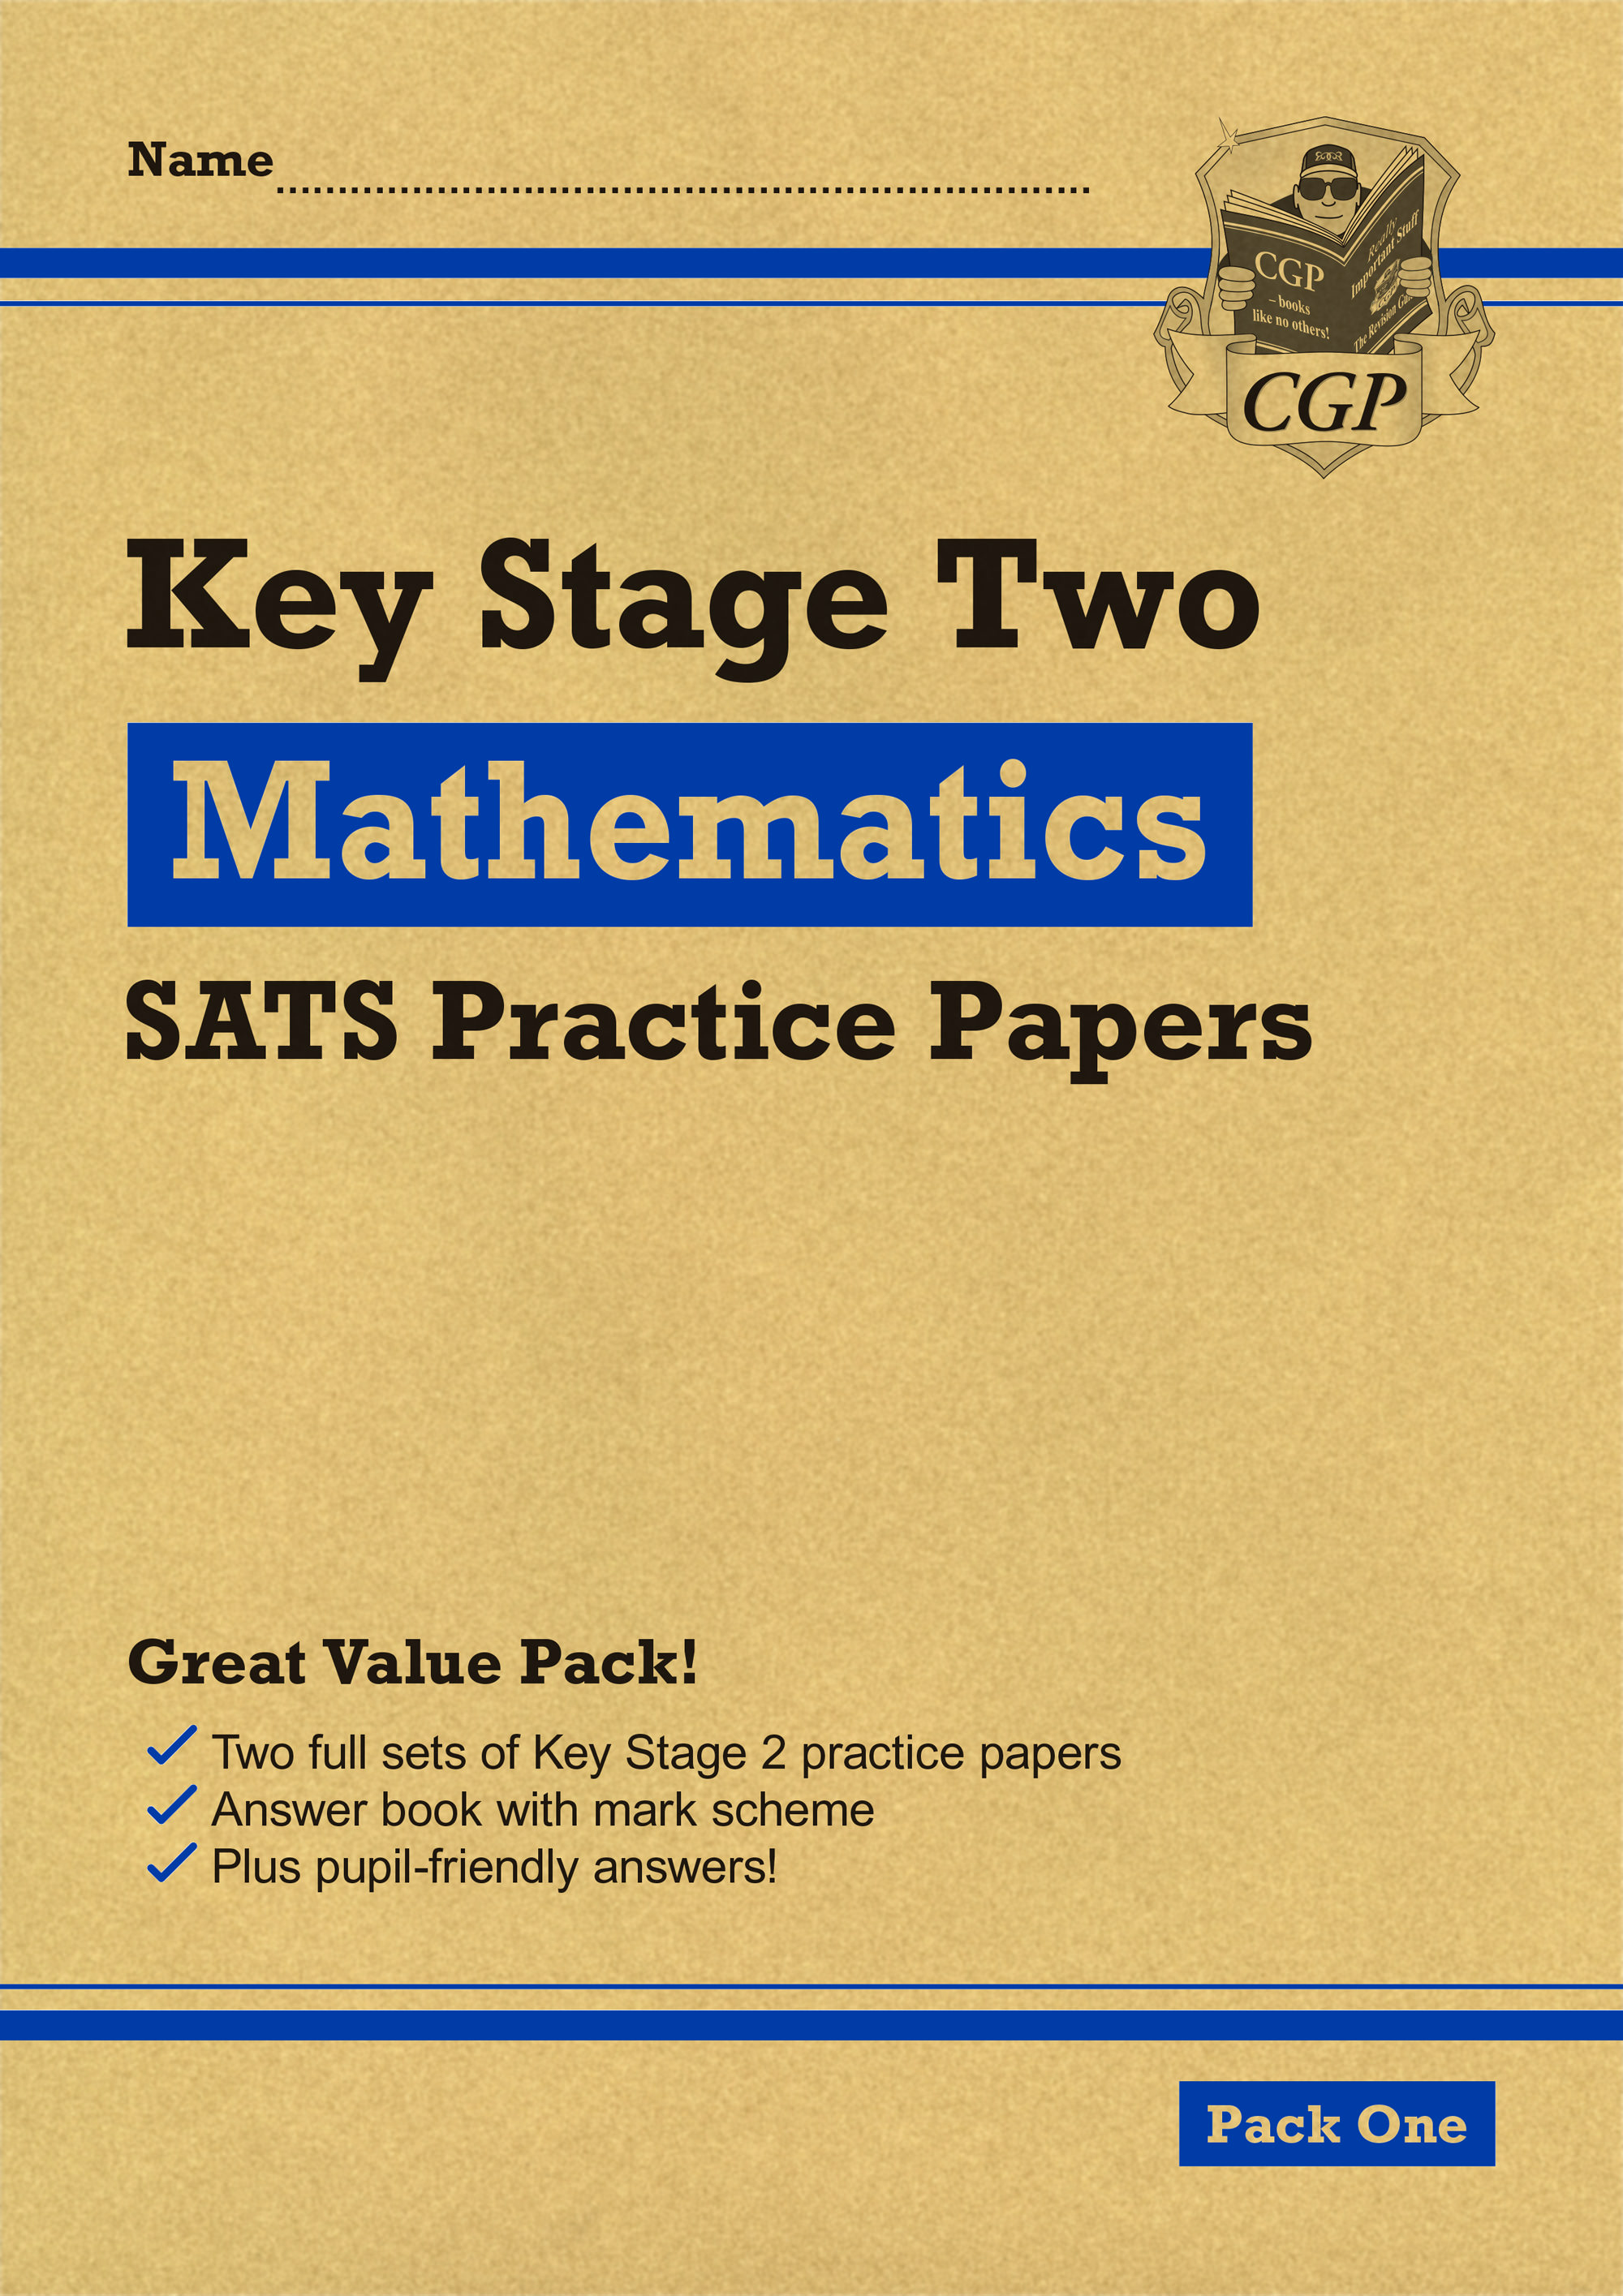 MHEP27 - New KS2 Maths SATS Practice Papers: Pack 1 (for the 2019 tests)